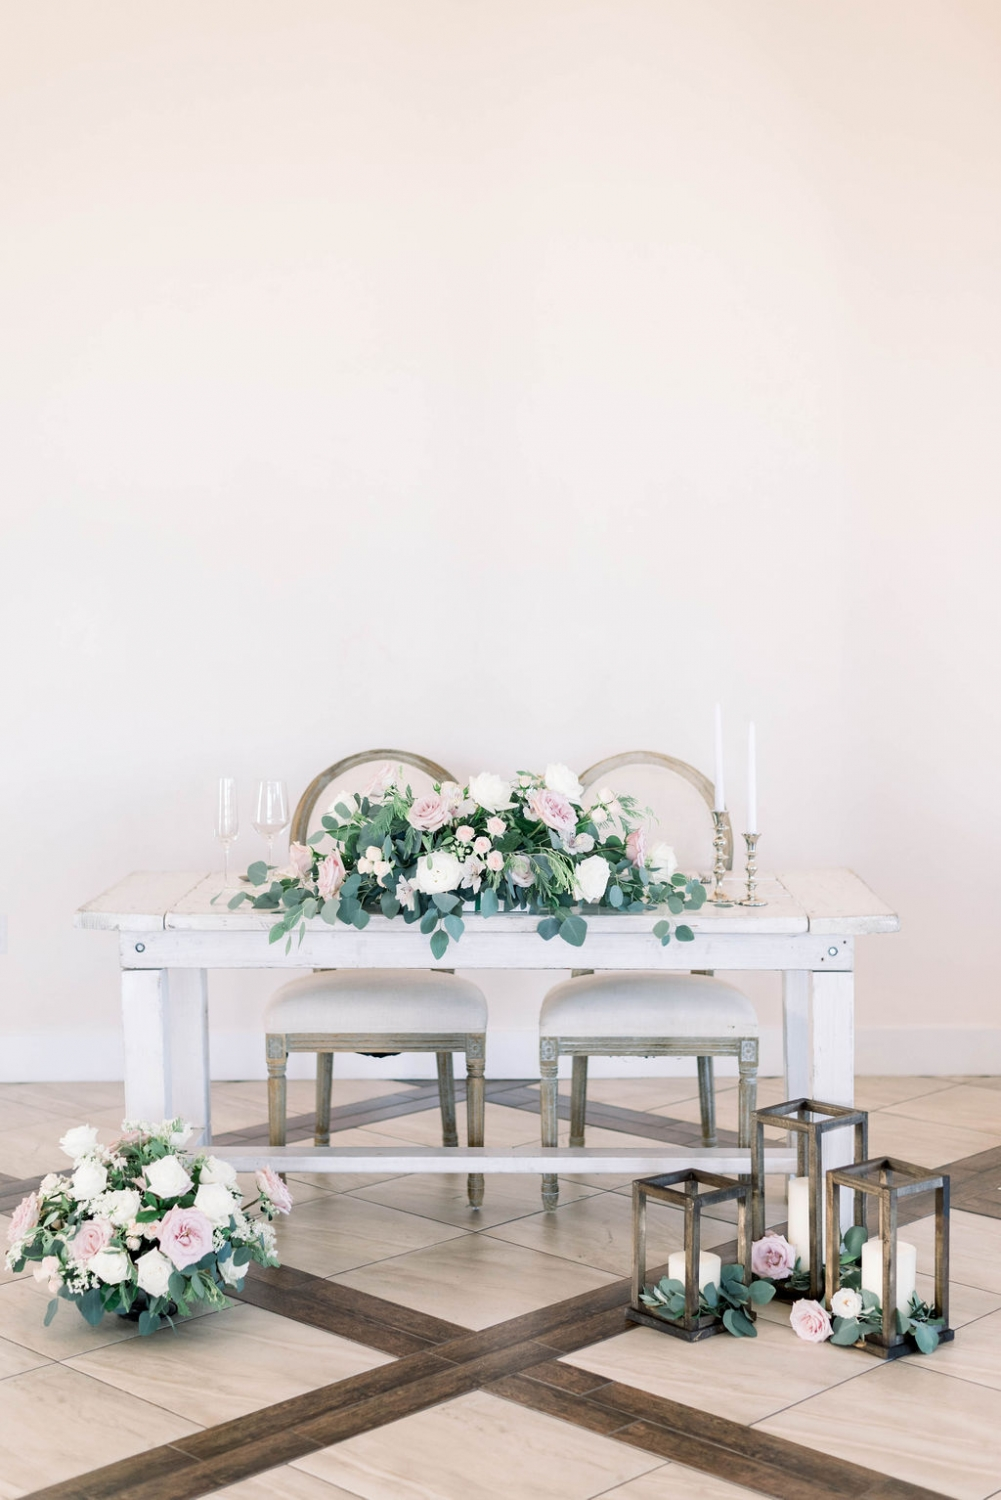 farm style bride and groom table with rustic accents